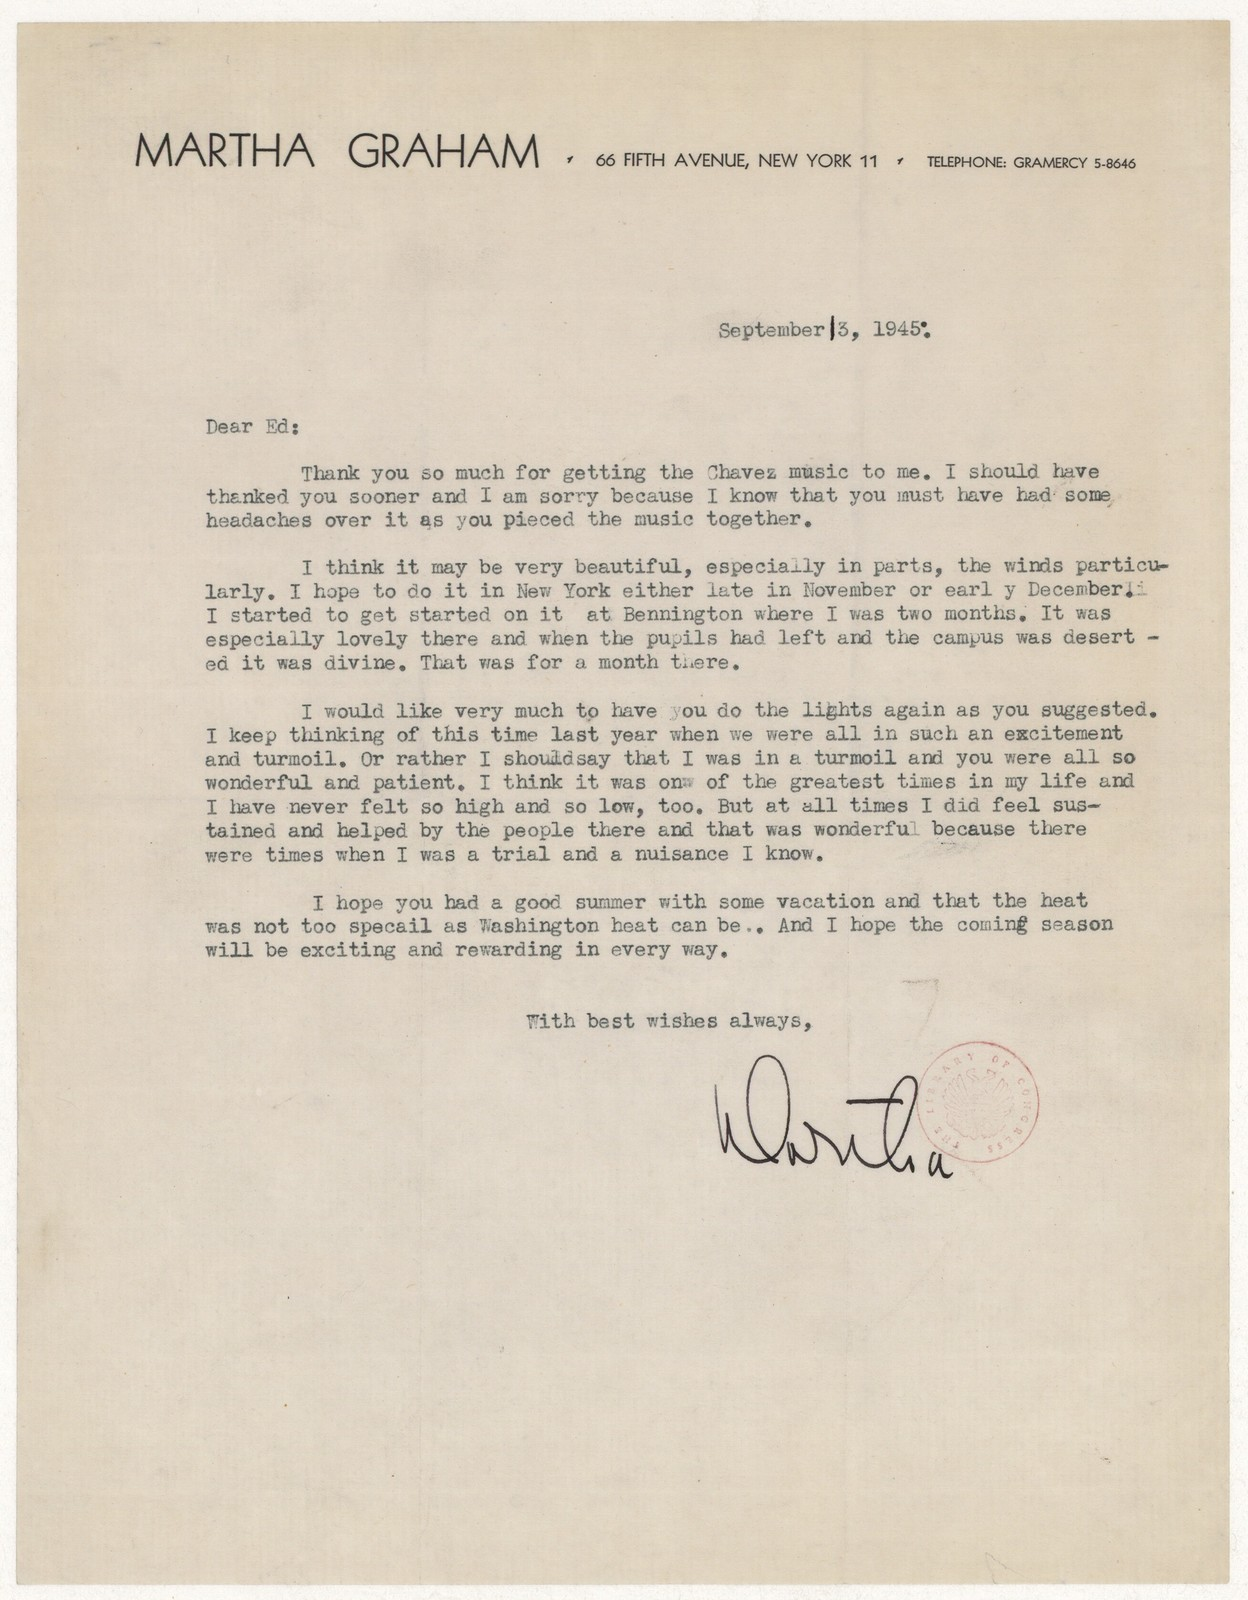 [ Letter from Martha Graham to Edward N. Waters, September 13, 1945]